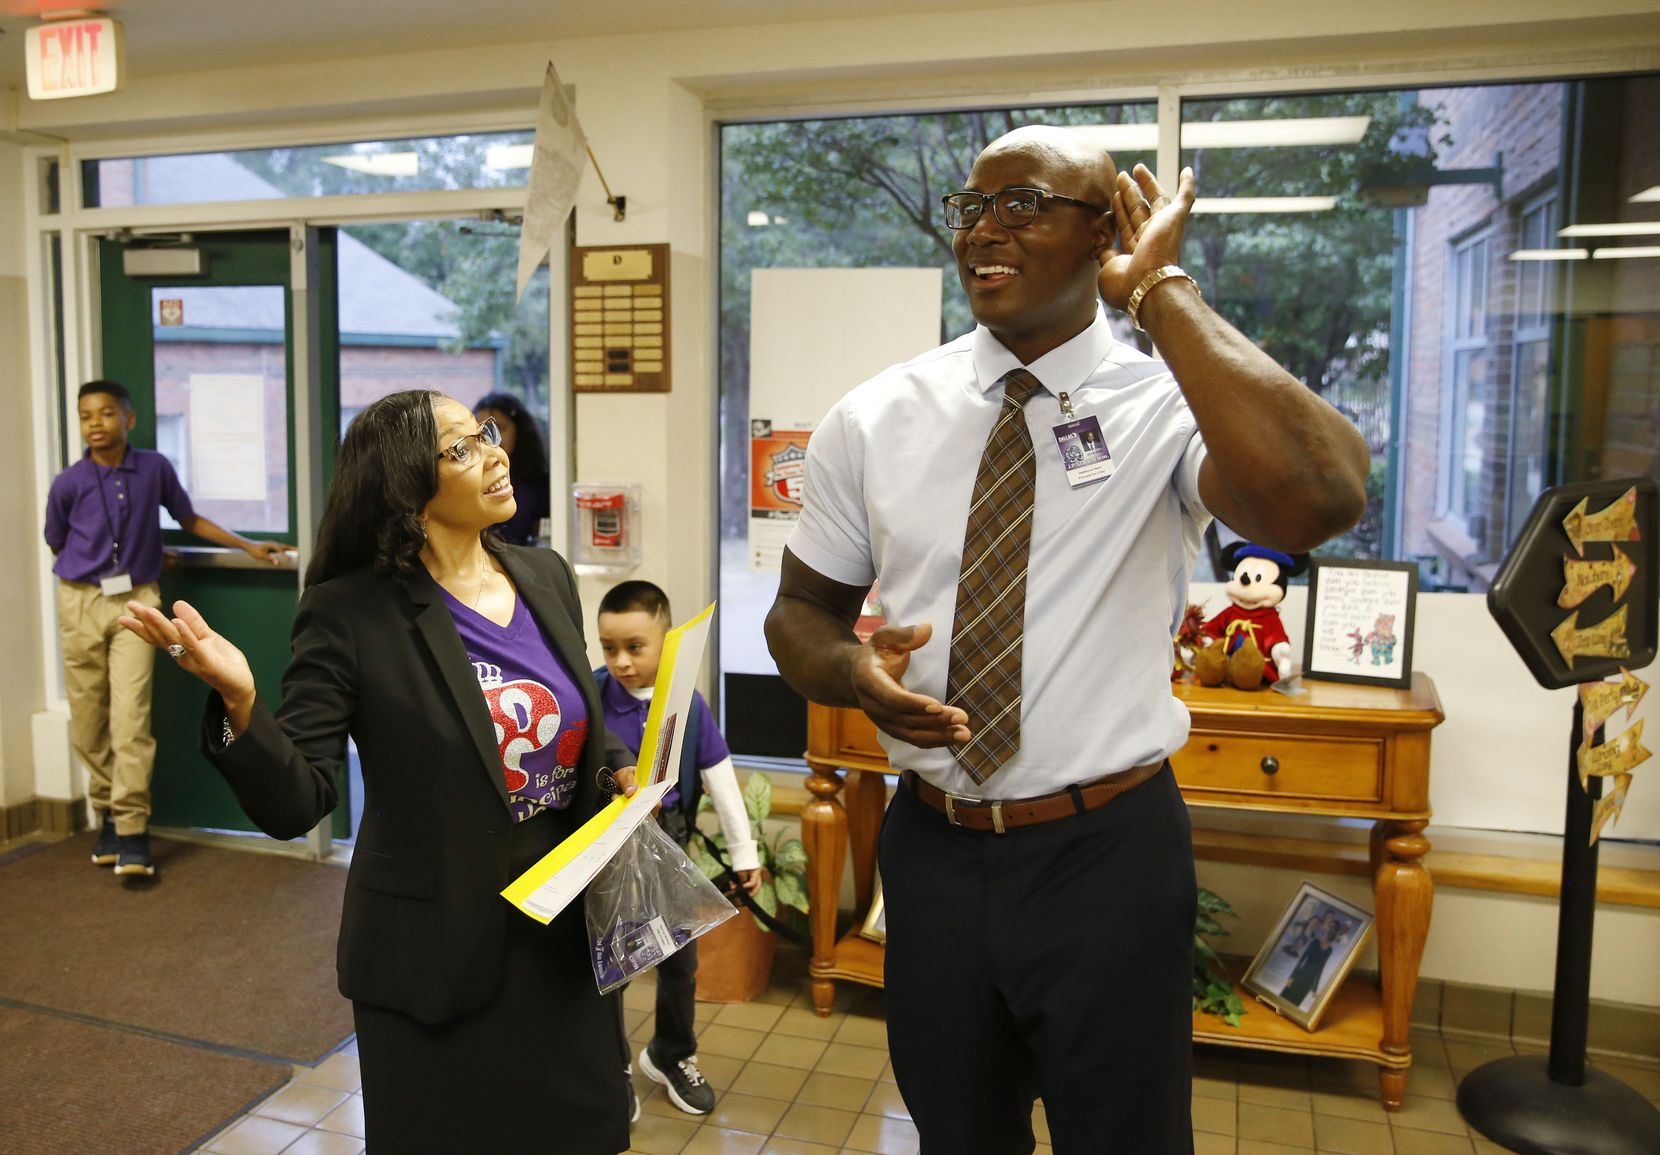 """Ware listens with Starks principal Lynette Howard and students as """"New Day,"""" a gospel song by The Walls Group, plays over the intercom."""